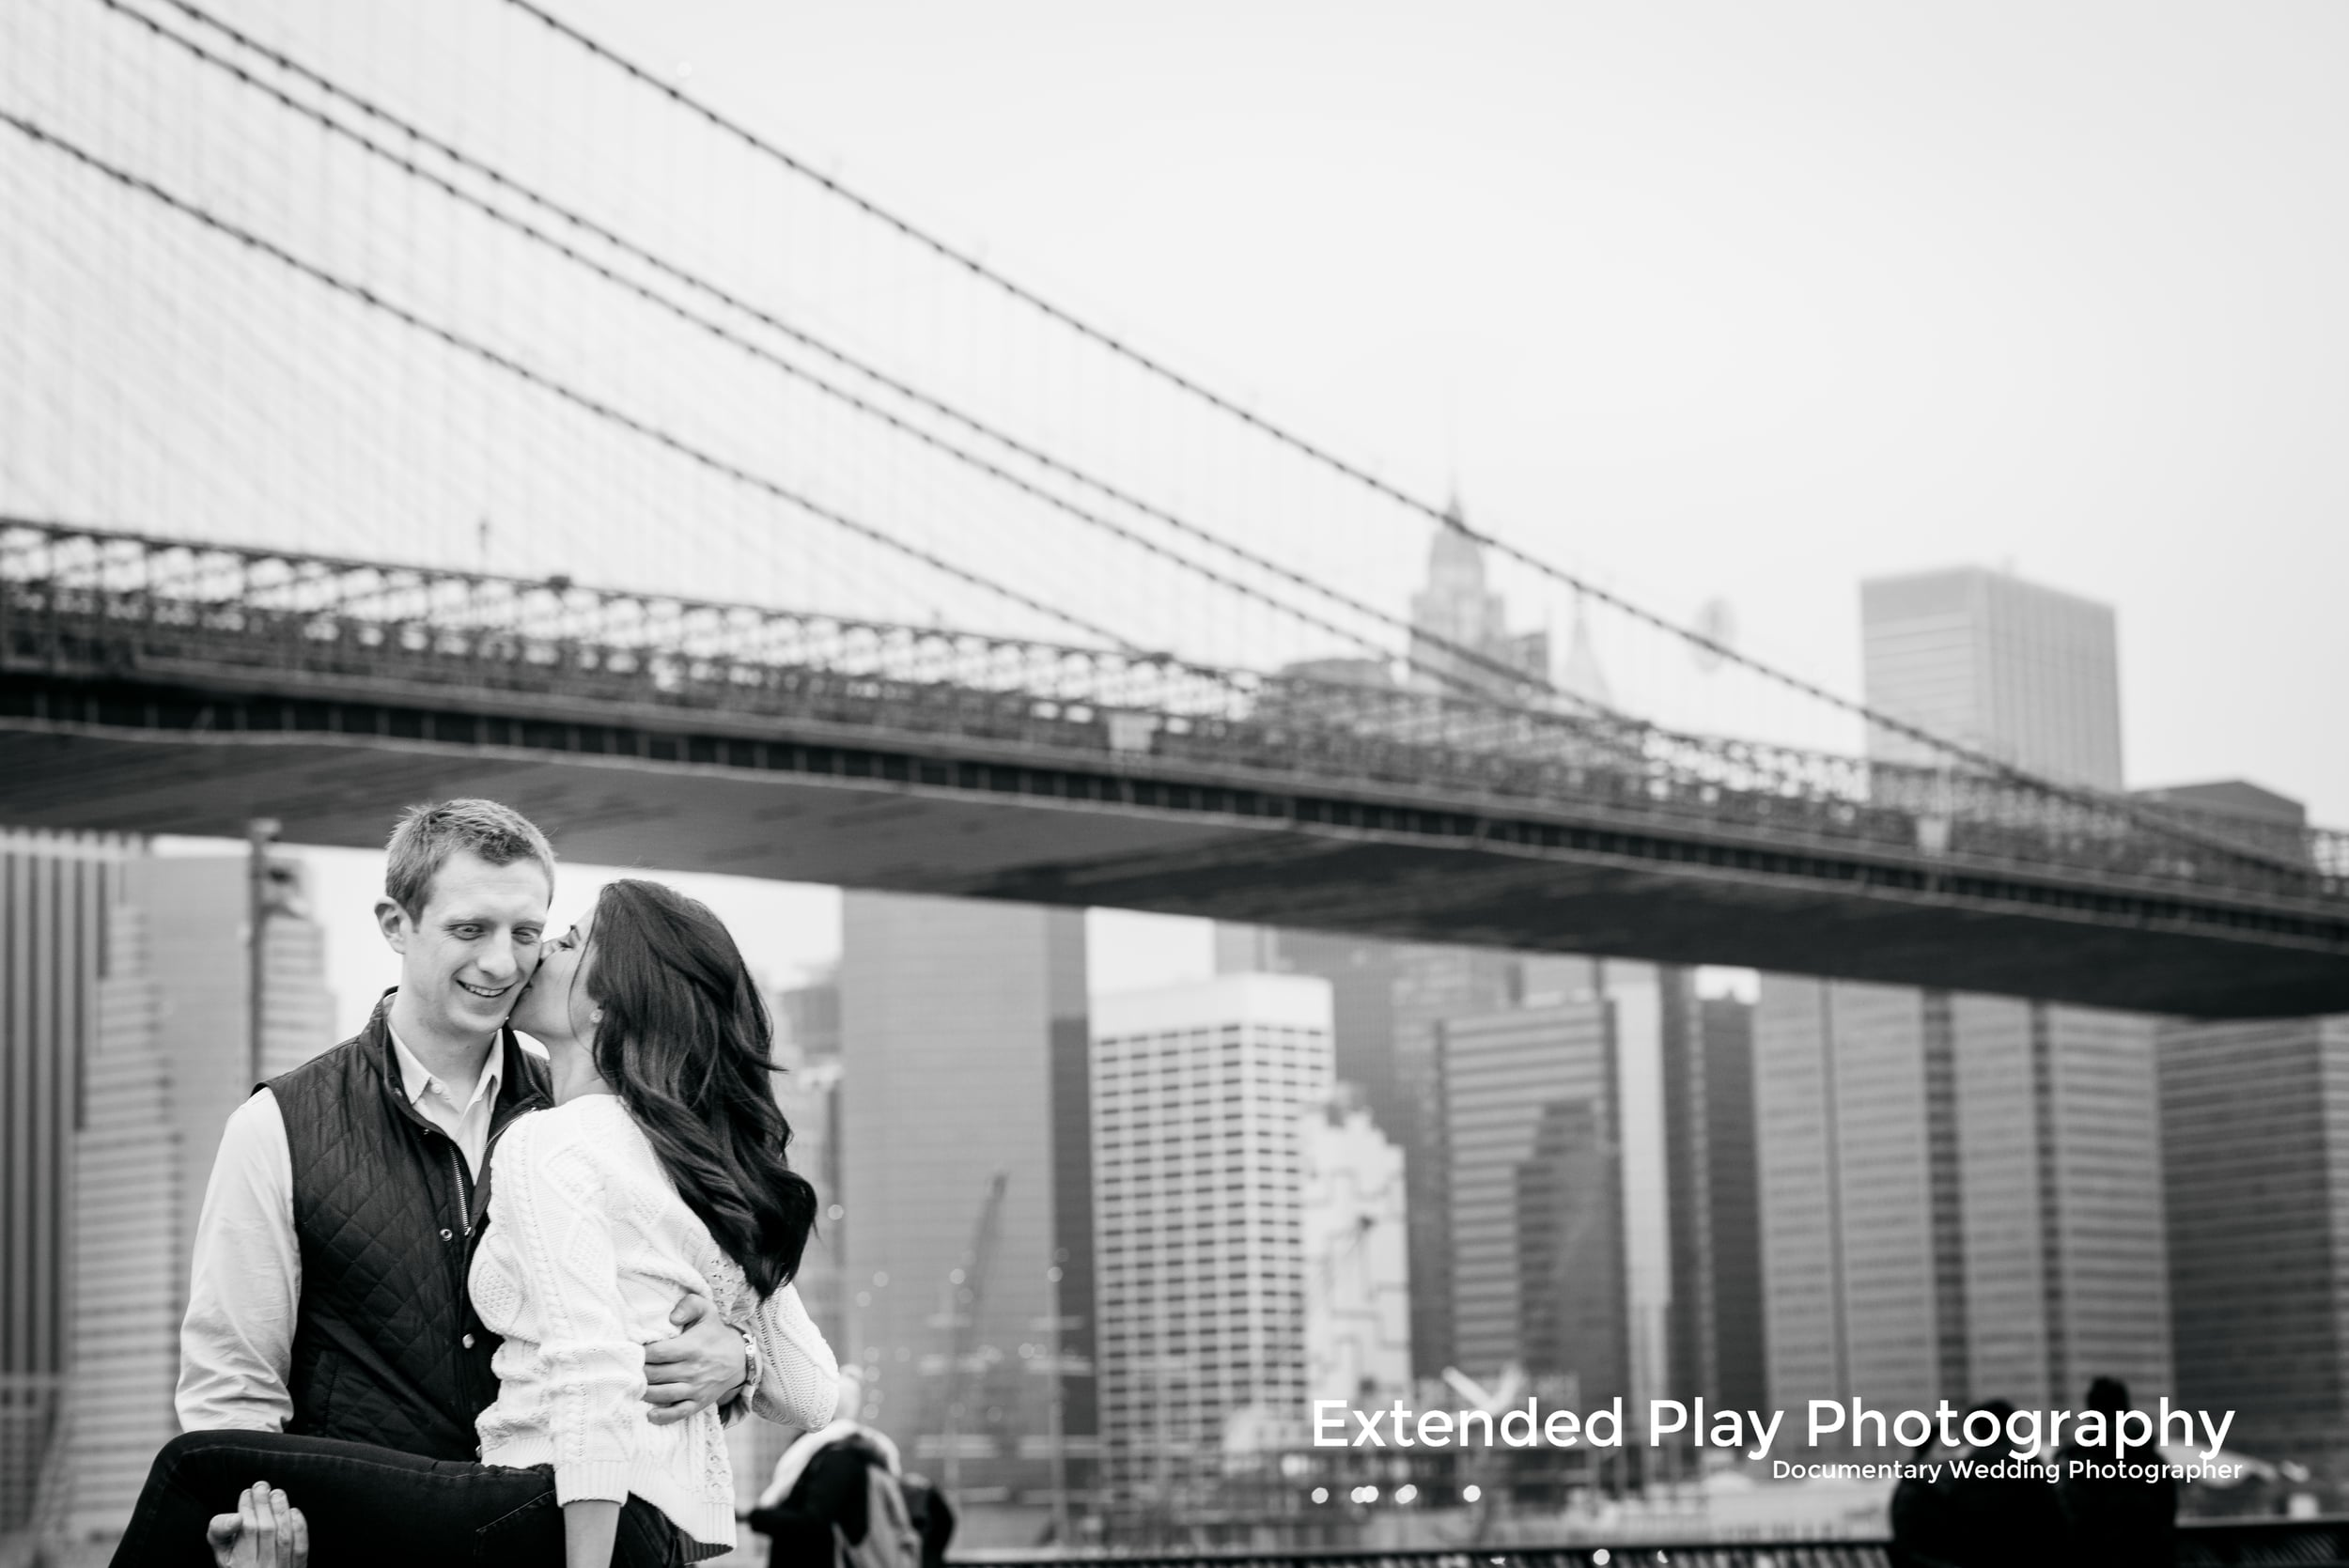 Extended Play Photography New York City Engagement-11.jpg